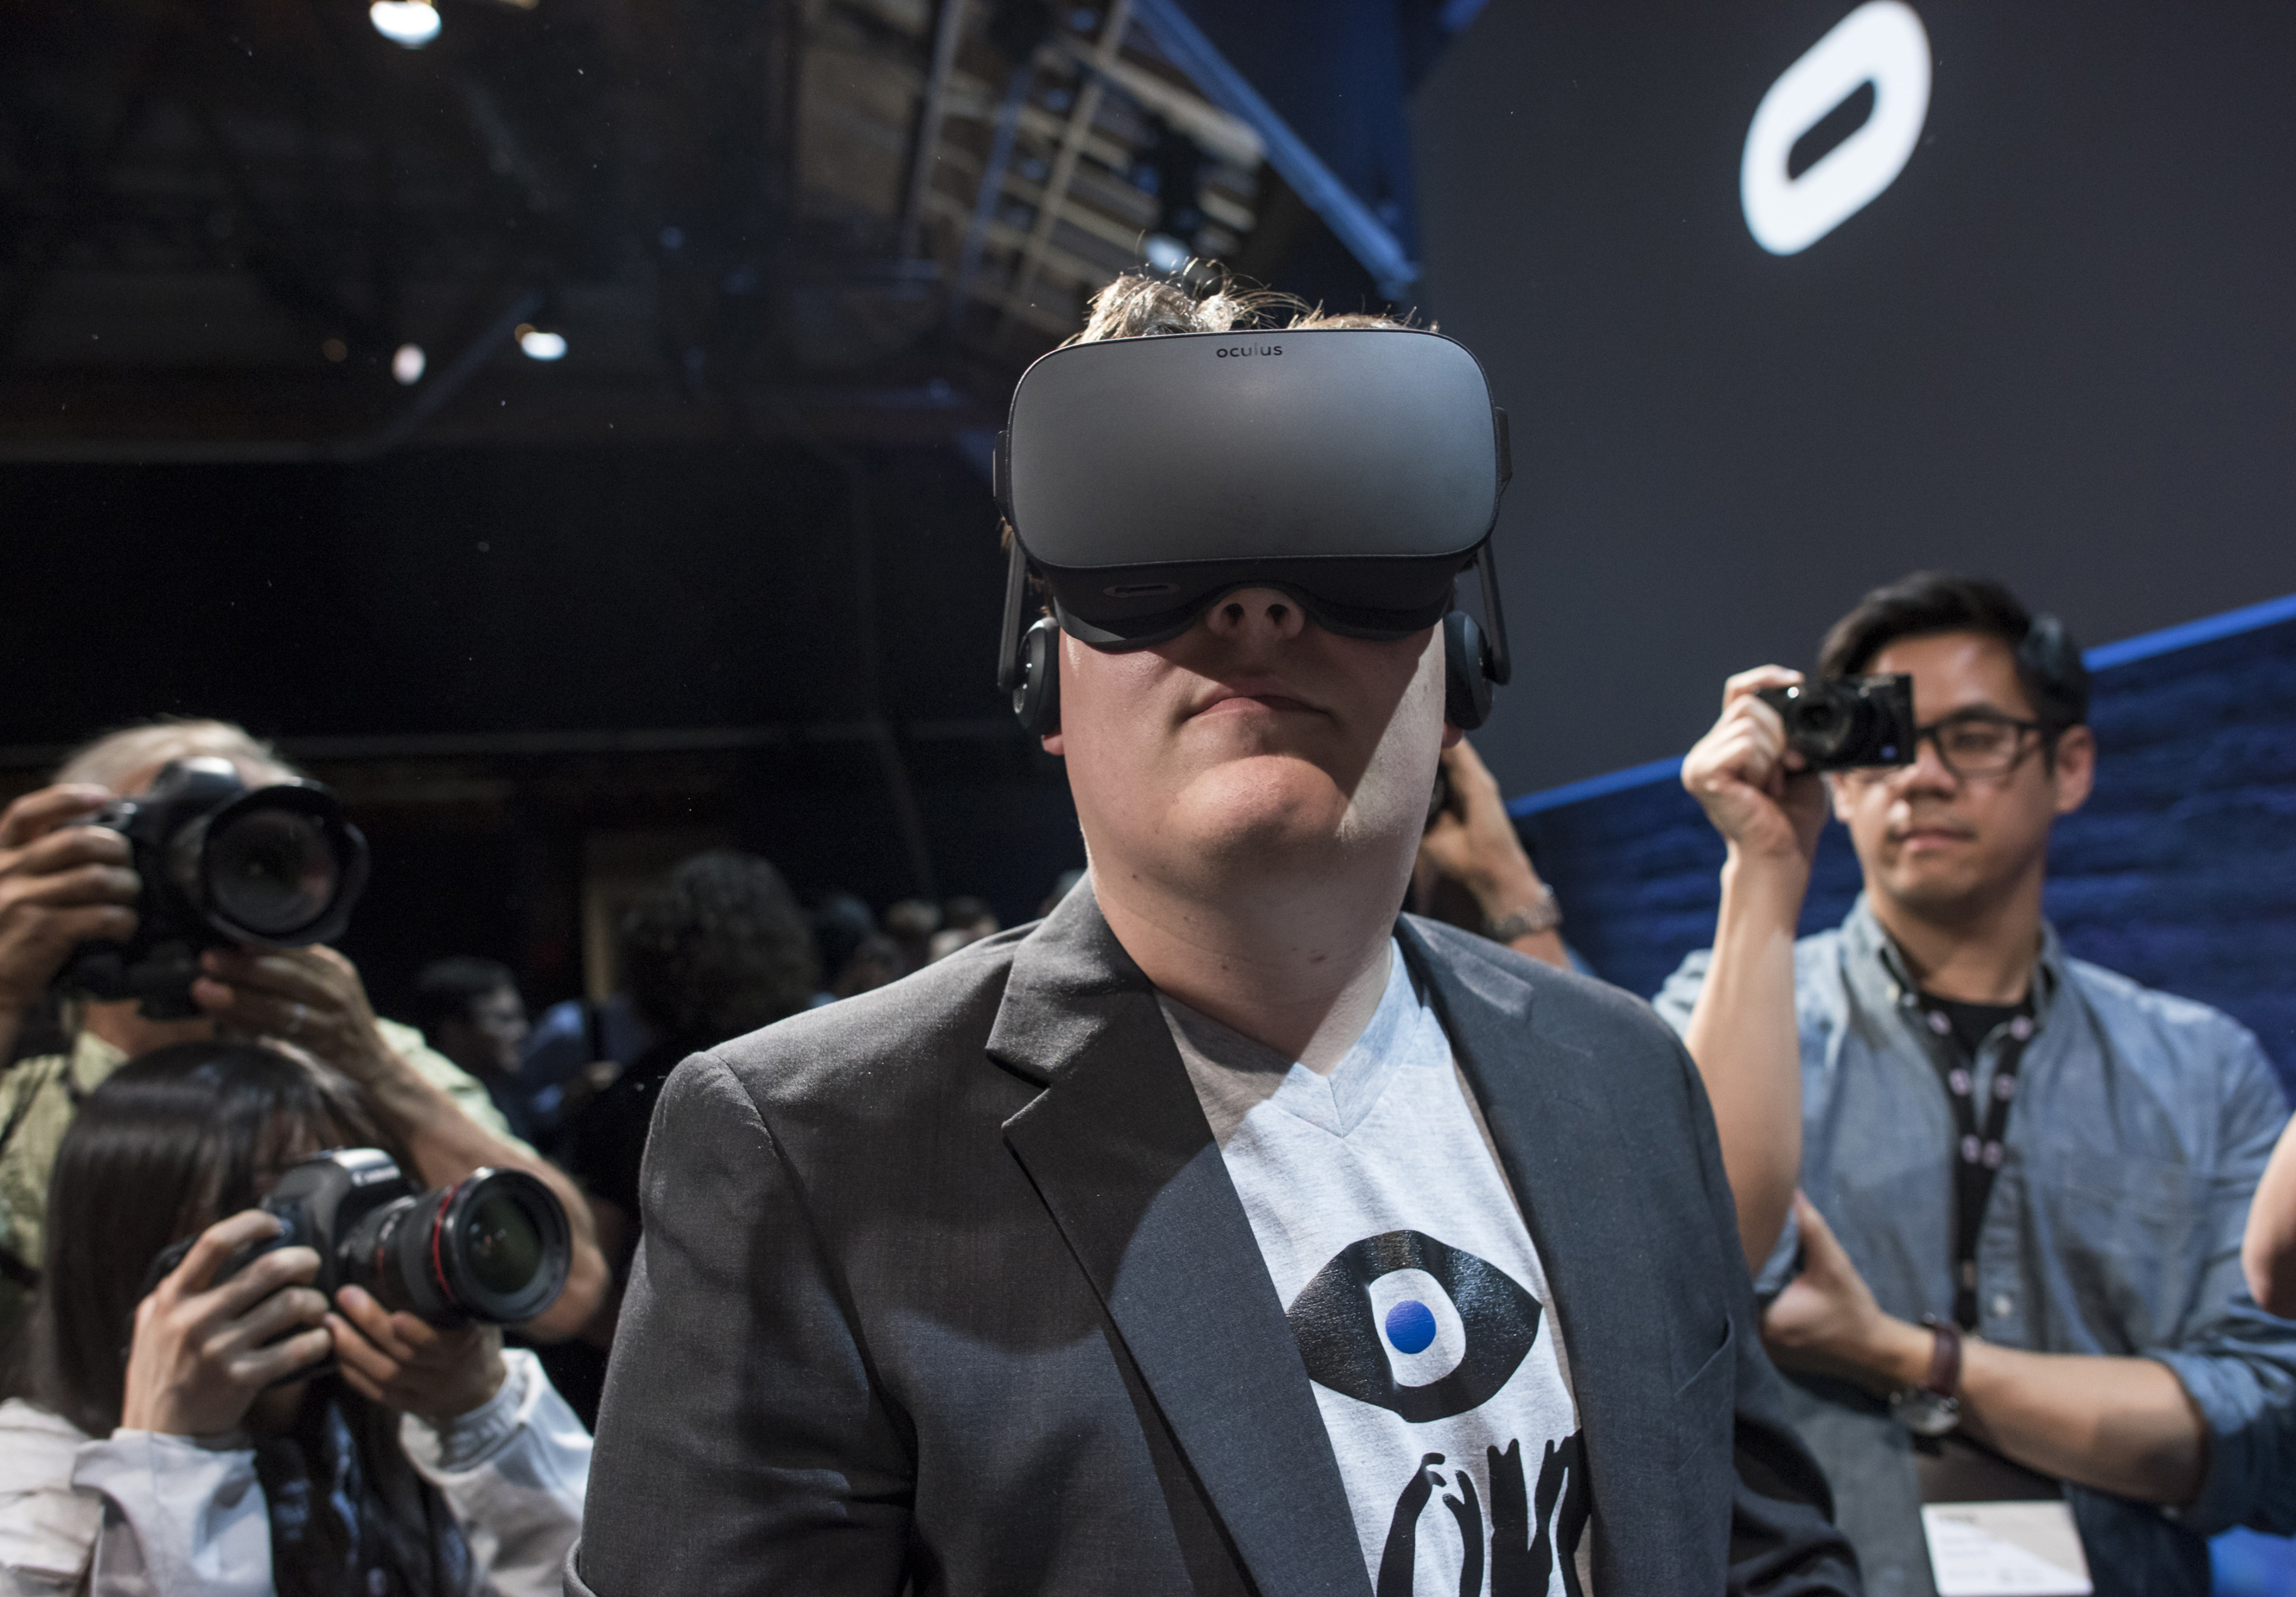 "Palmer Luckey, co-founder of Oculus VR. Inc. and creator of the Oculus Rift, demonstrates the new Oculus Rift headset to the media during the Oculus VR Inc. ""Step Into The Rift"" event in San Francisco,   California, U.S., on Thursday, June 11, 2015. Facebook Inc.'s Oculus virtual-reality headsets will work with Microsoft Corp.'s Windows 10 and use the software maker's wireless Xbox game controller. Photographer: David Paul Morris/Bloomberg  *** Local Caption *** Palmer Luckey"